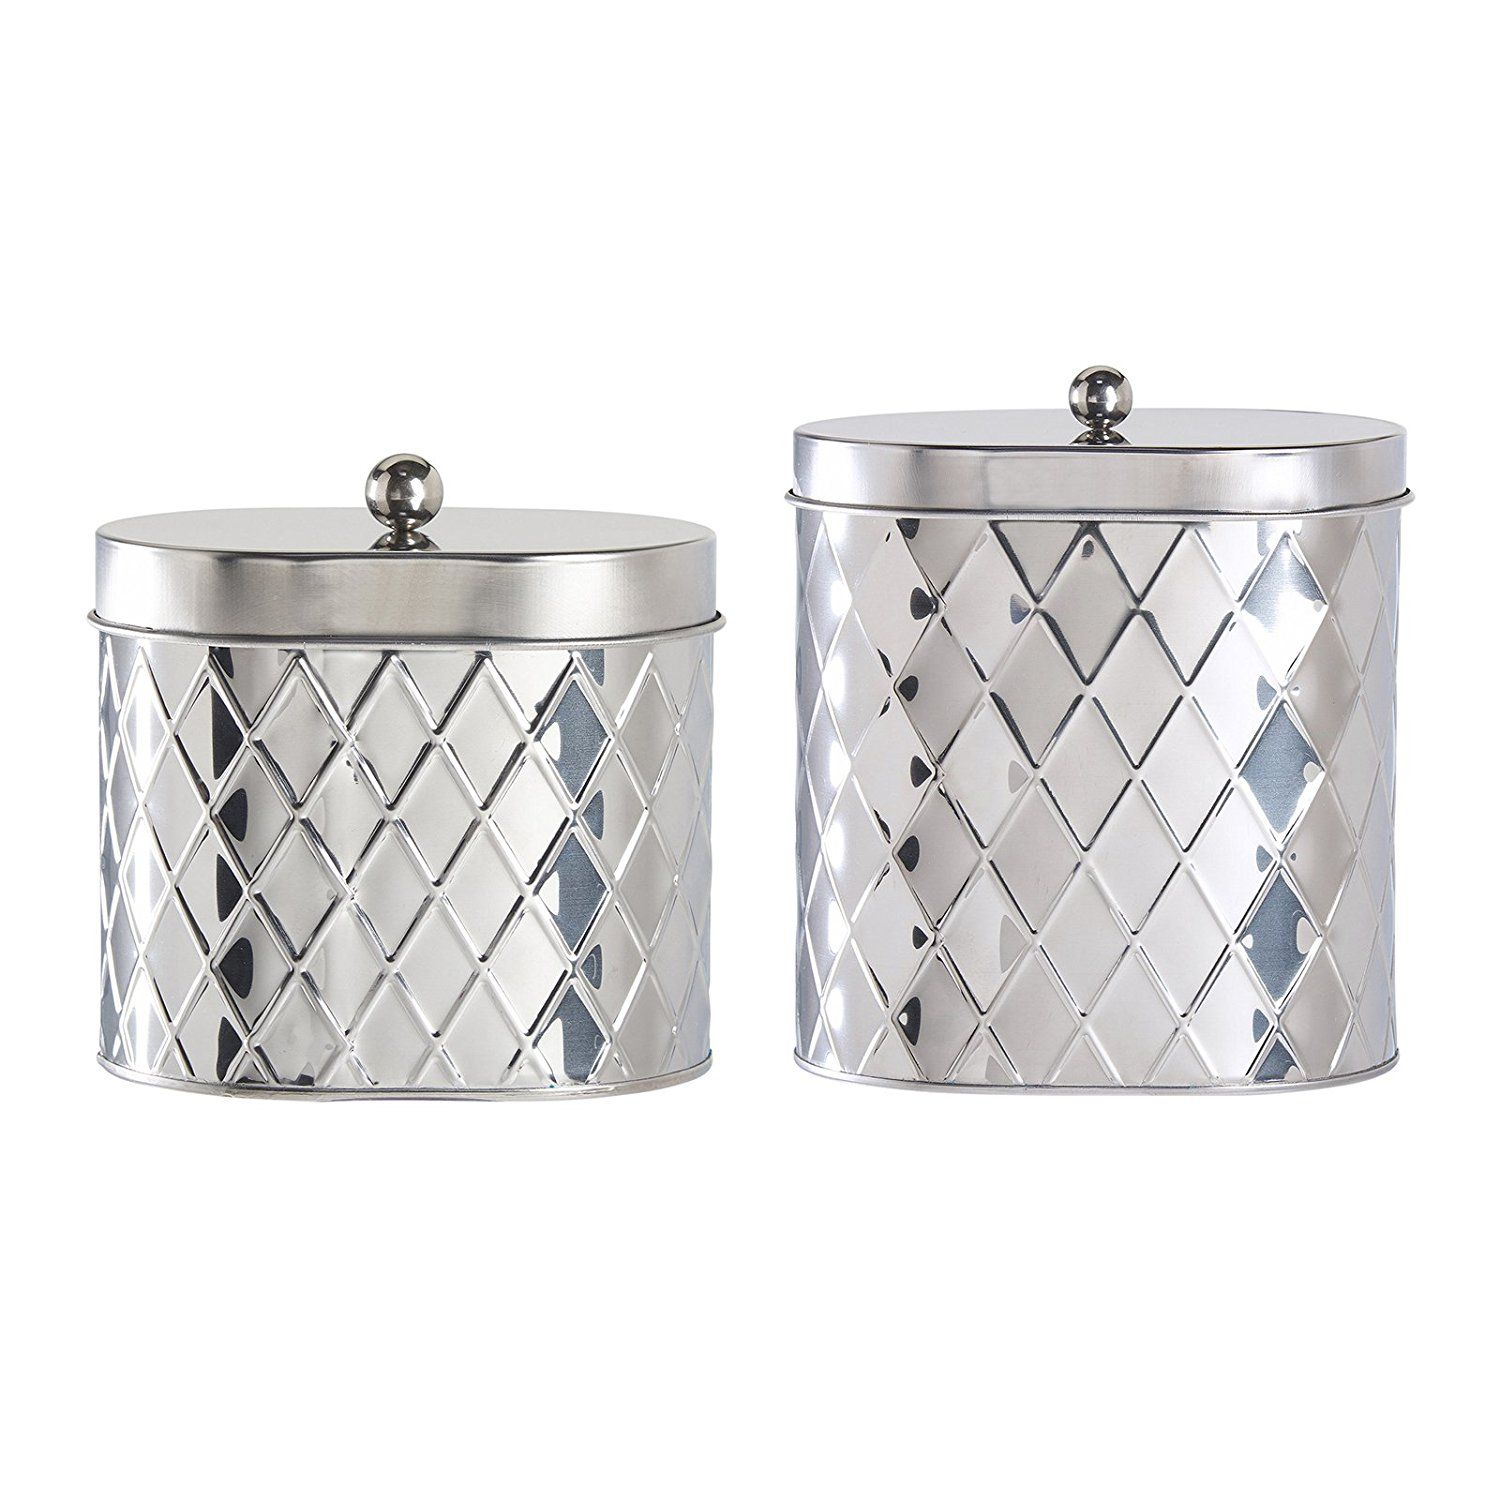 Amici Seychelles Oval Metal Diamond Canister, Stainless Steel - Set of 2 *** Insider's special review you can't miss. Read more  : Wine Accessories